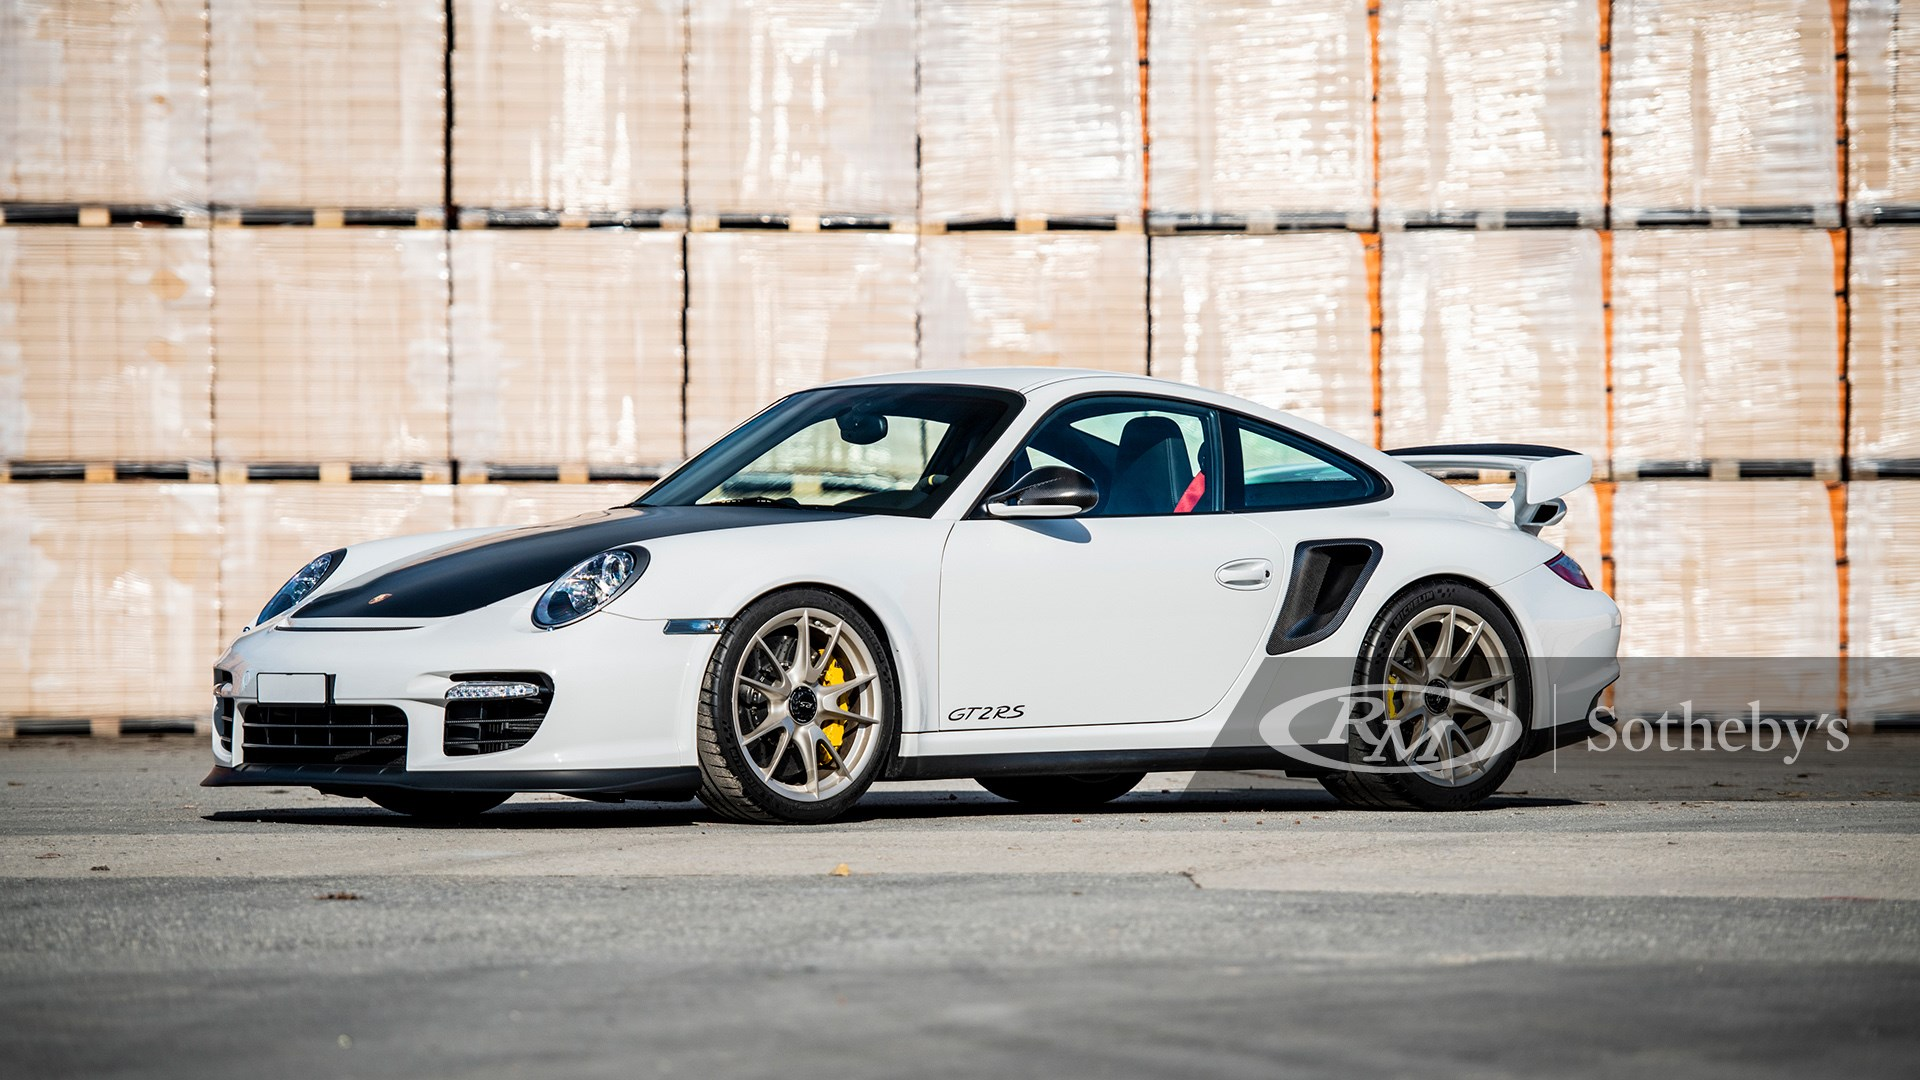 2010 Porsche 911 GT2 RS available at RM Sotheby's Online Only Open Roads February Auction 2021